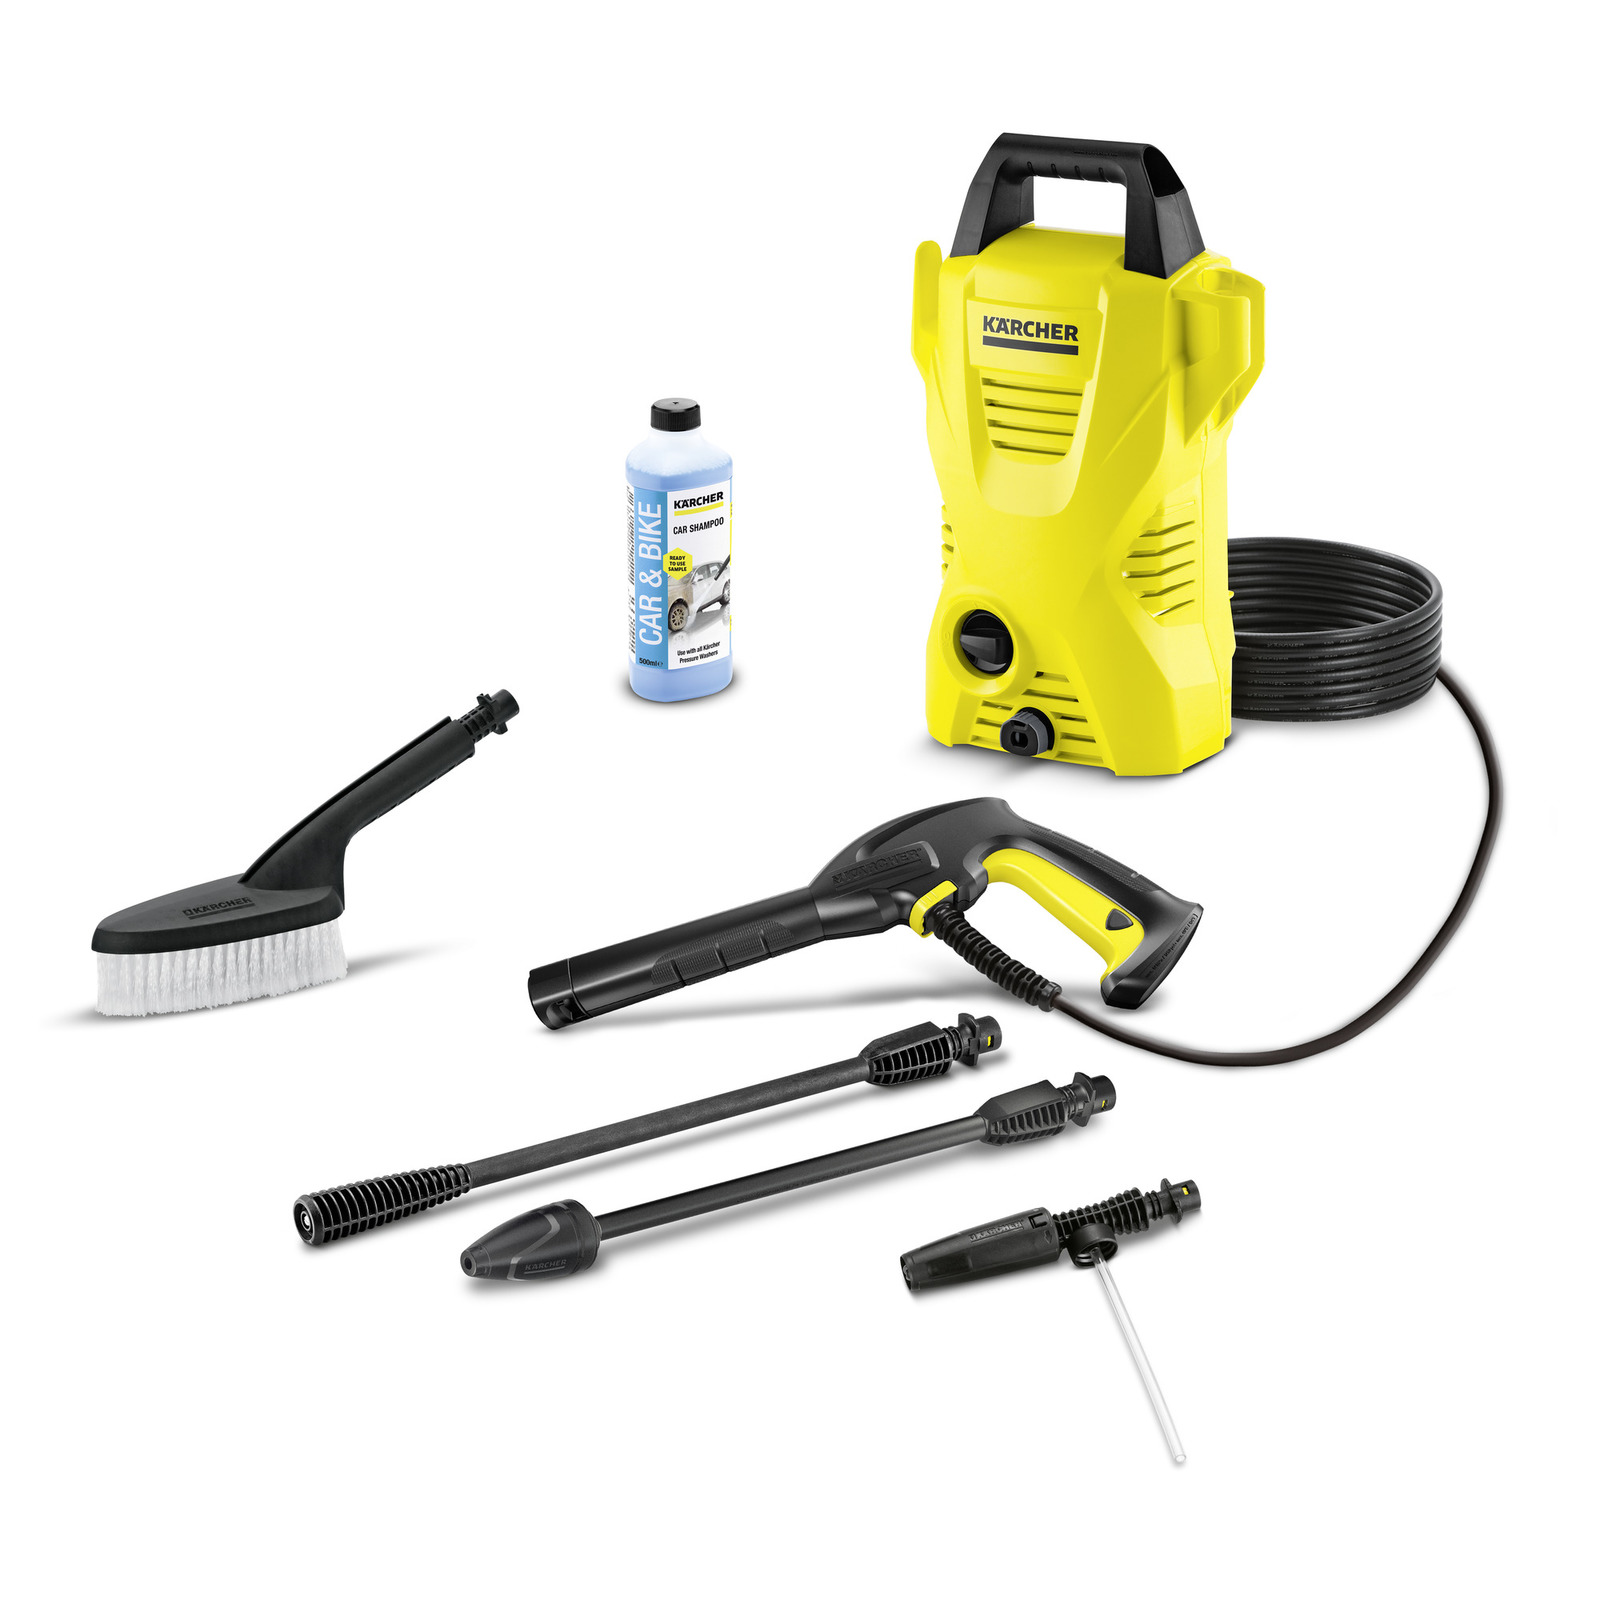 Lot 30688 - V Brand New Karcher K2 Compact Car High Pressure Cleaner With Wash Brush - Foam Nozzle & Car Shampoo